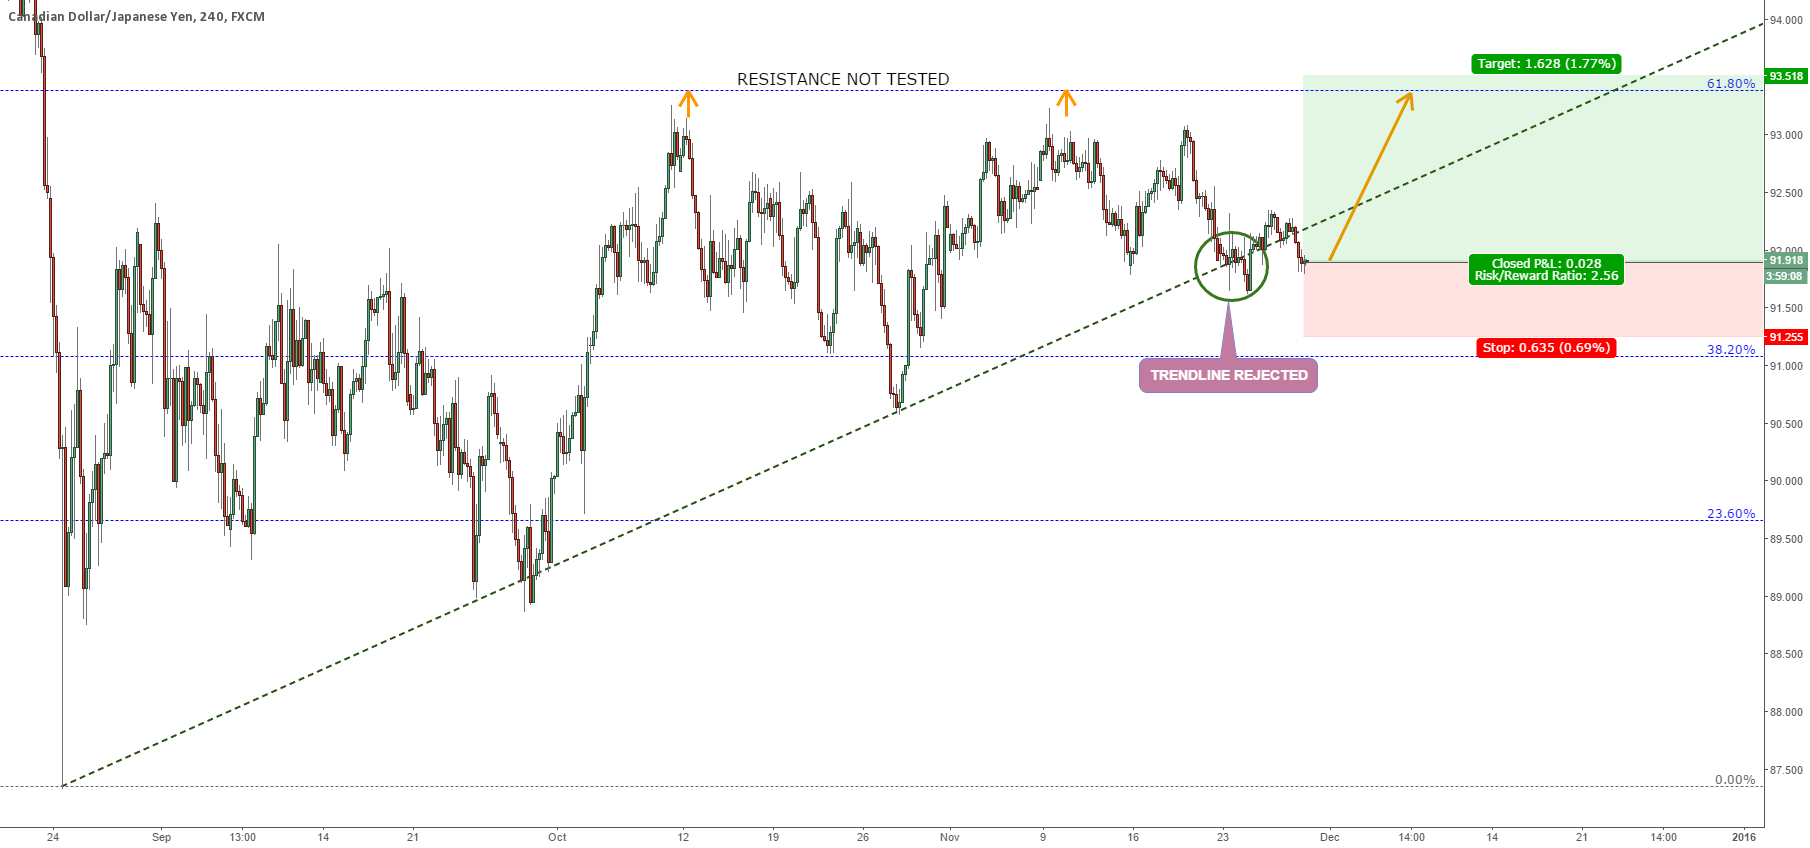 CADJPY UP AFTER REJECTING THE TRENDLINE